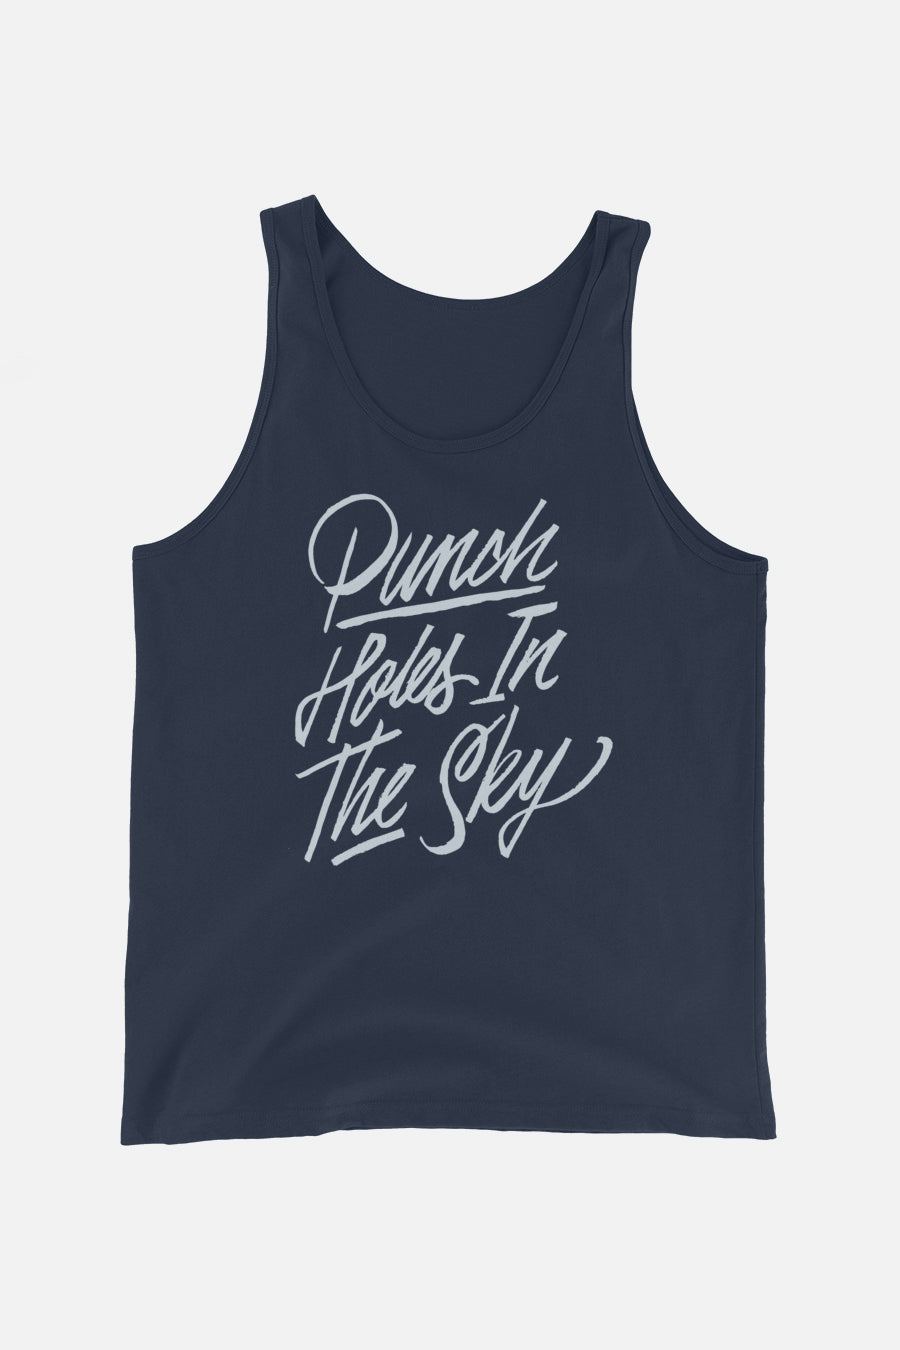 Punch Holes in the Sky Unisex Tank Top